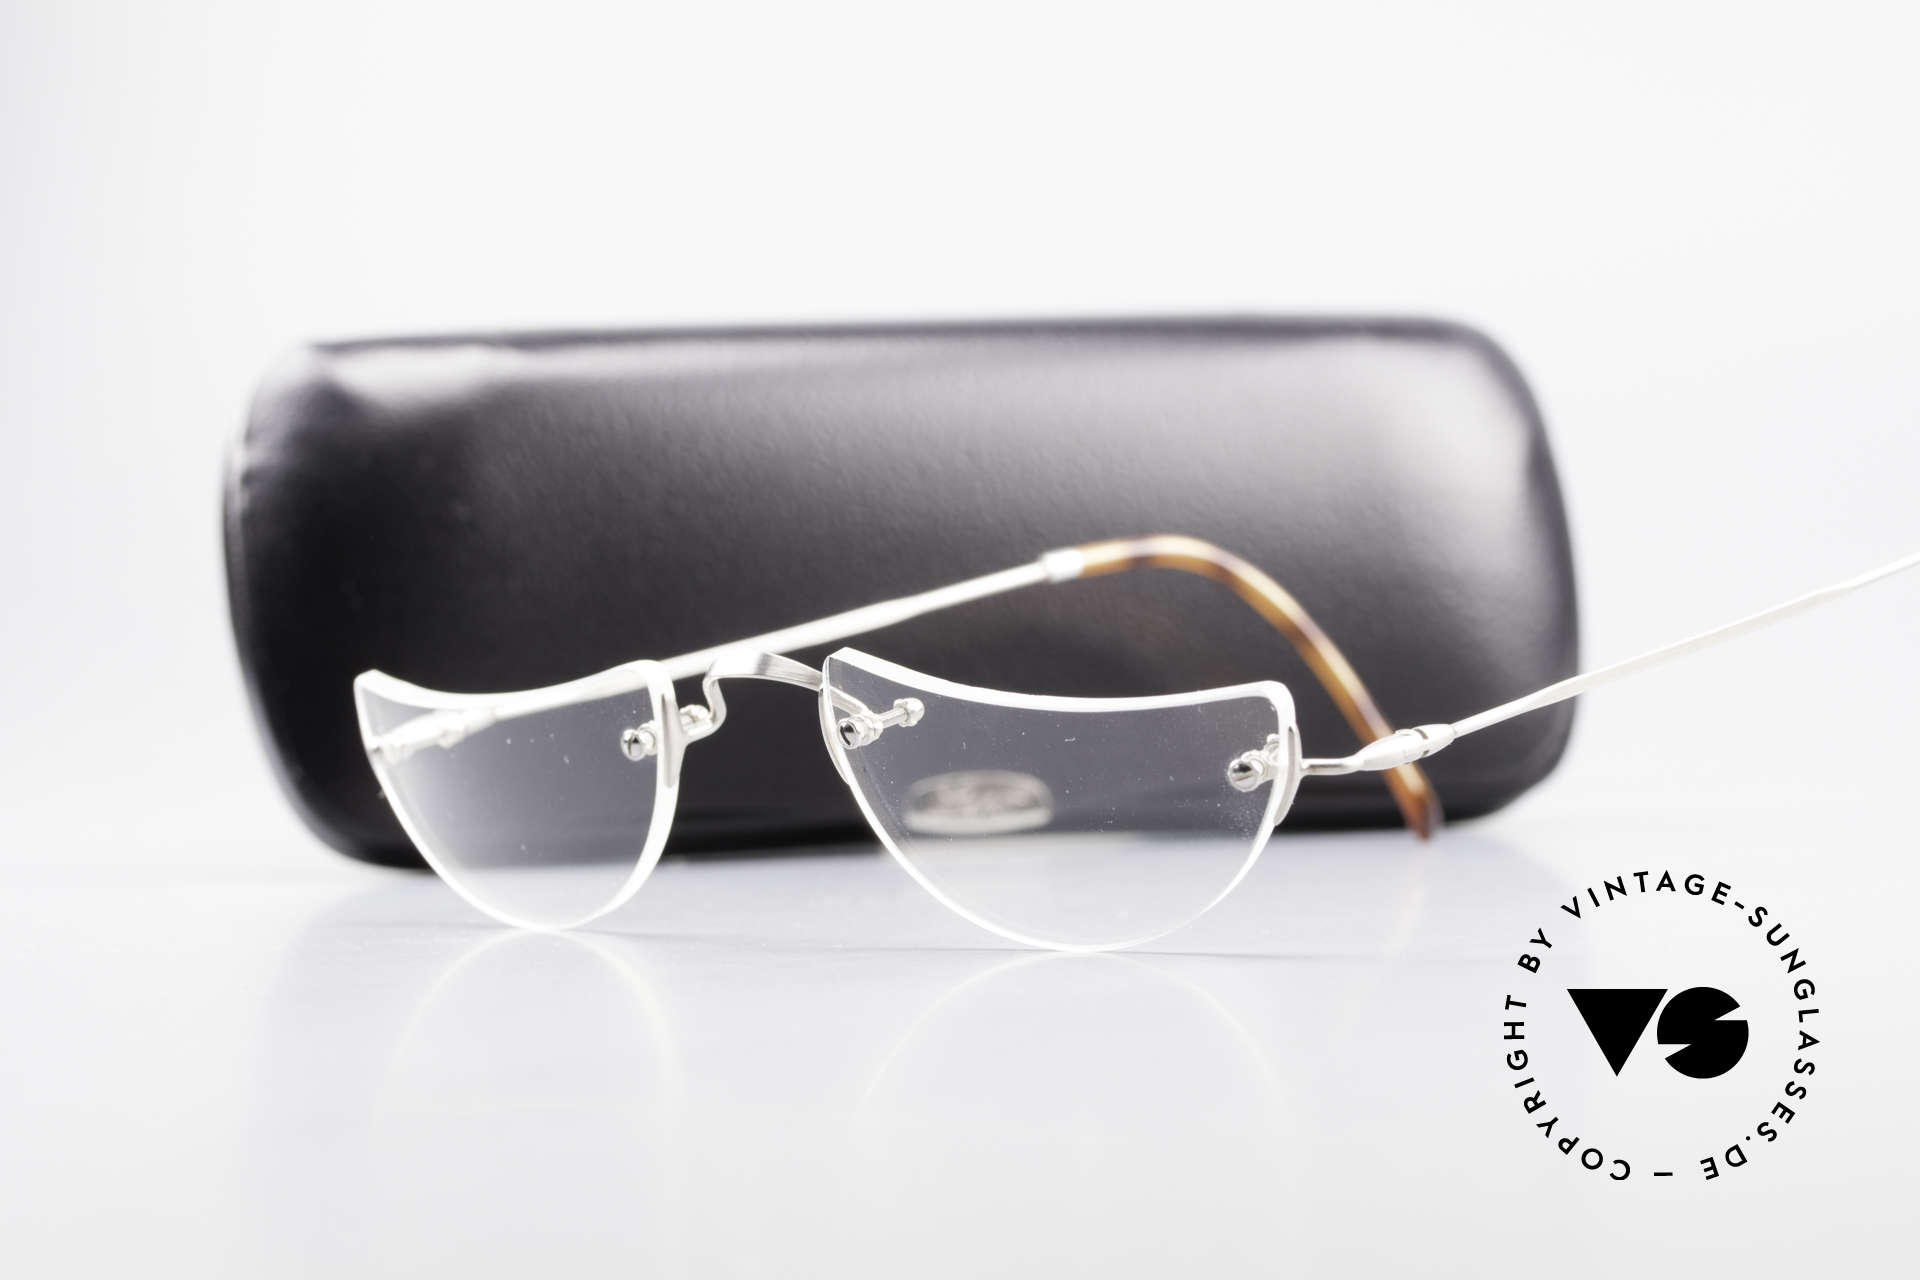 Lunor Classic Reading Rimless Reading Eyeglasses, Size: extra small, Made for Men and Women